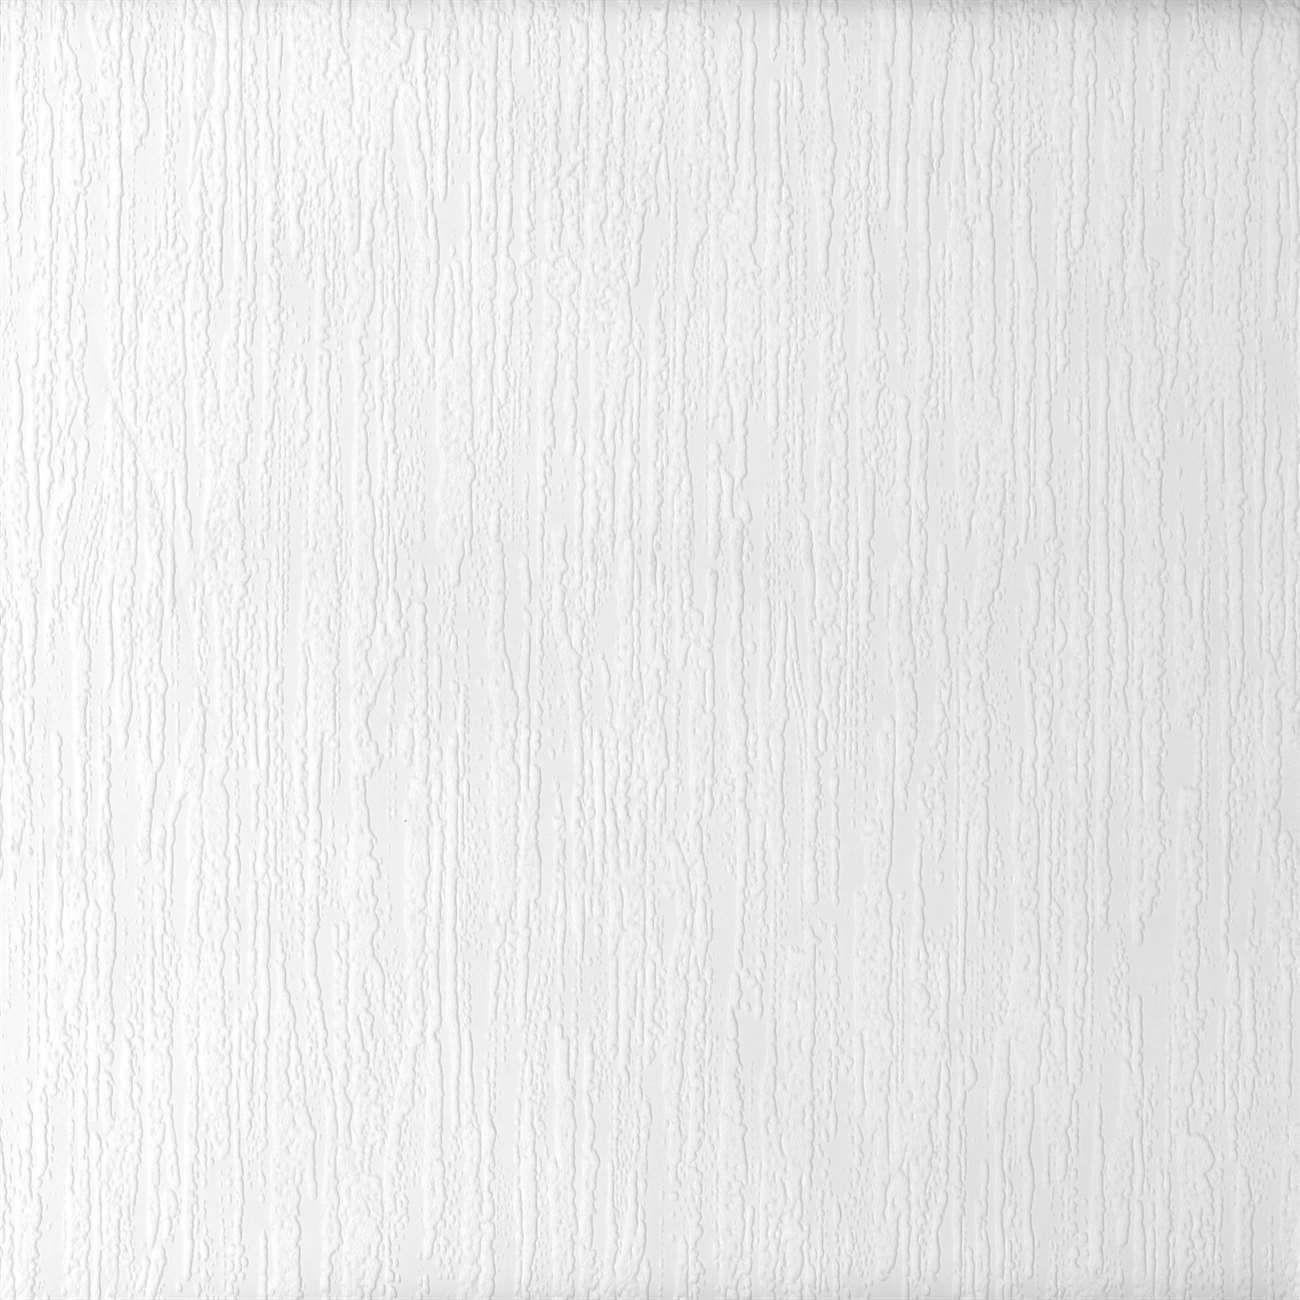 Cascade Raised White Textured Paintable Wallpaper 497-59008 FD59008